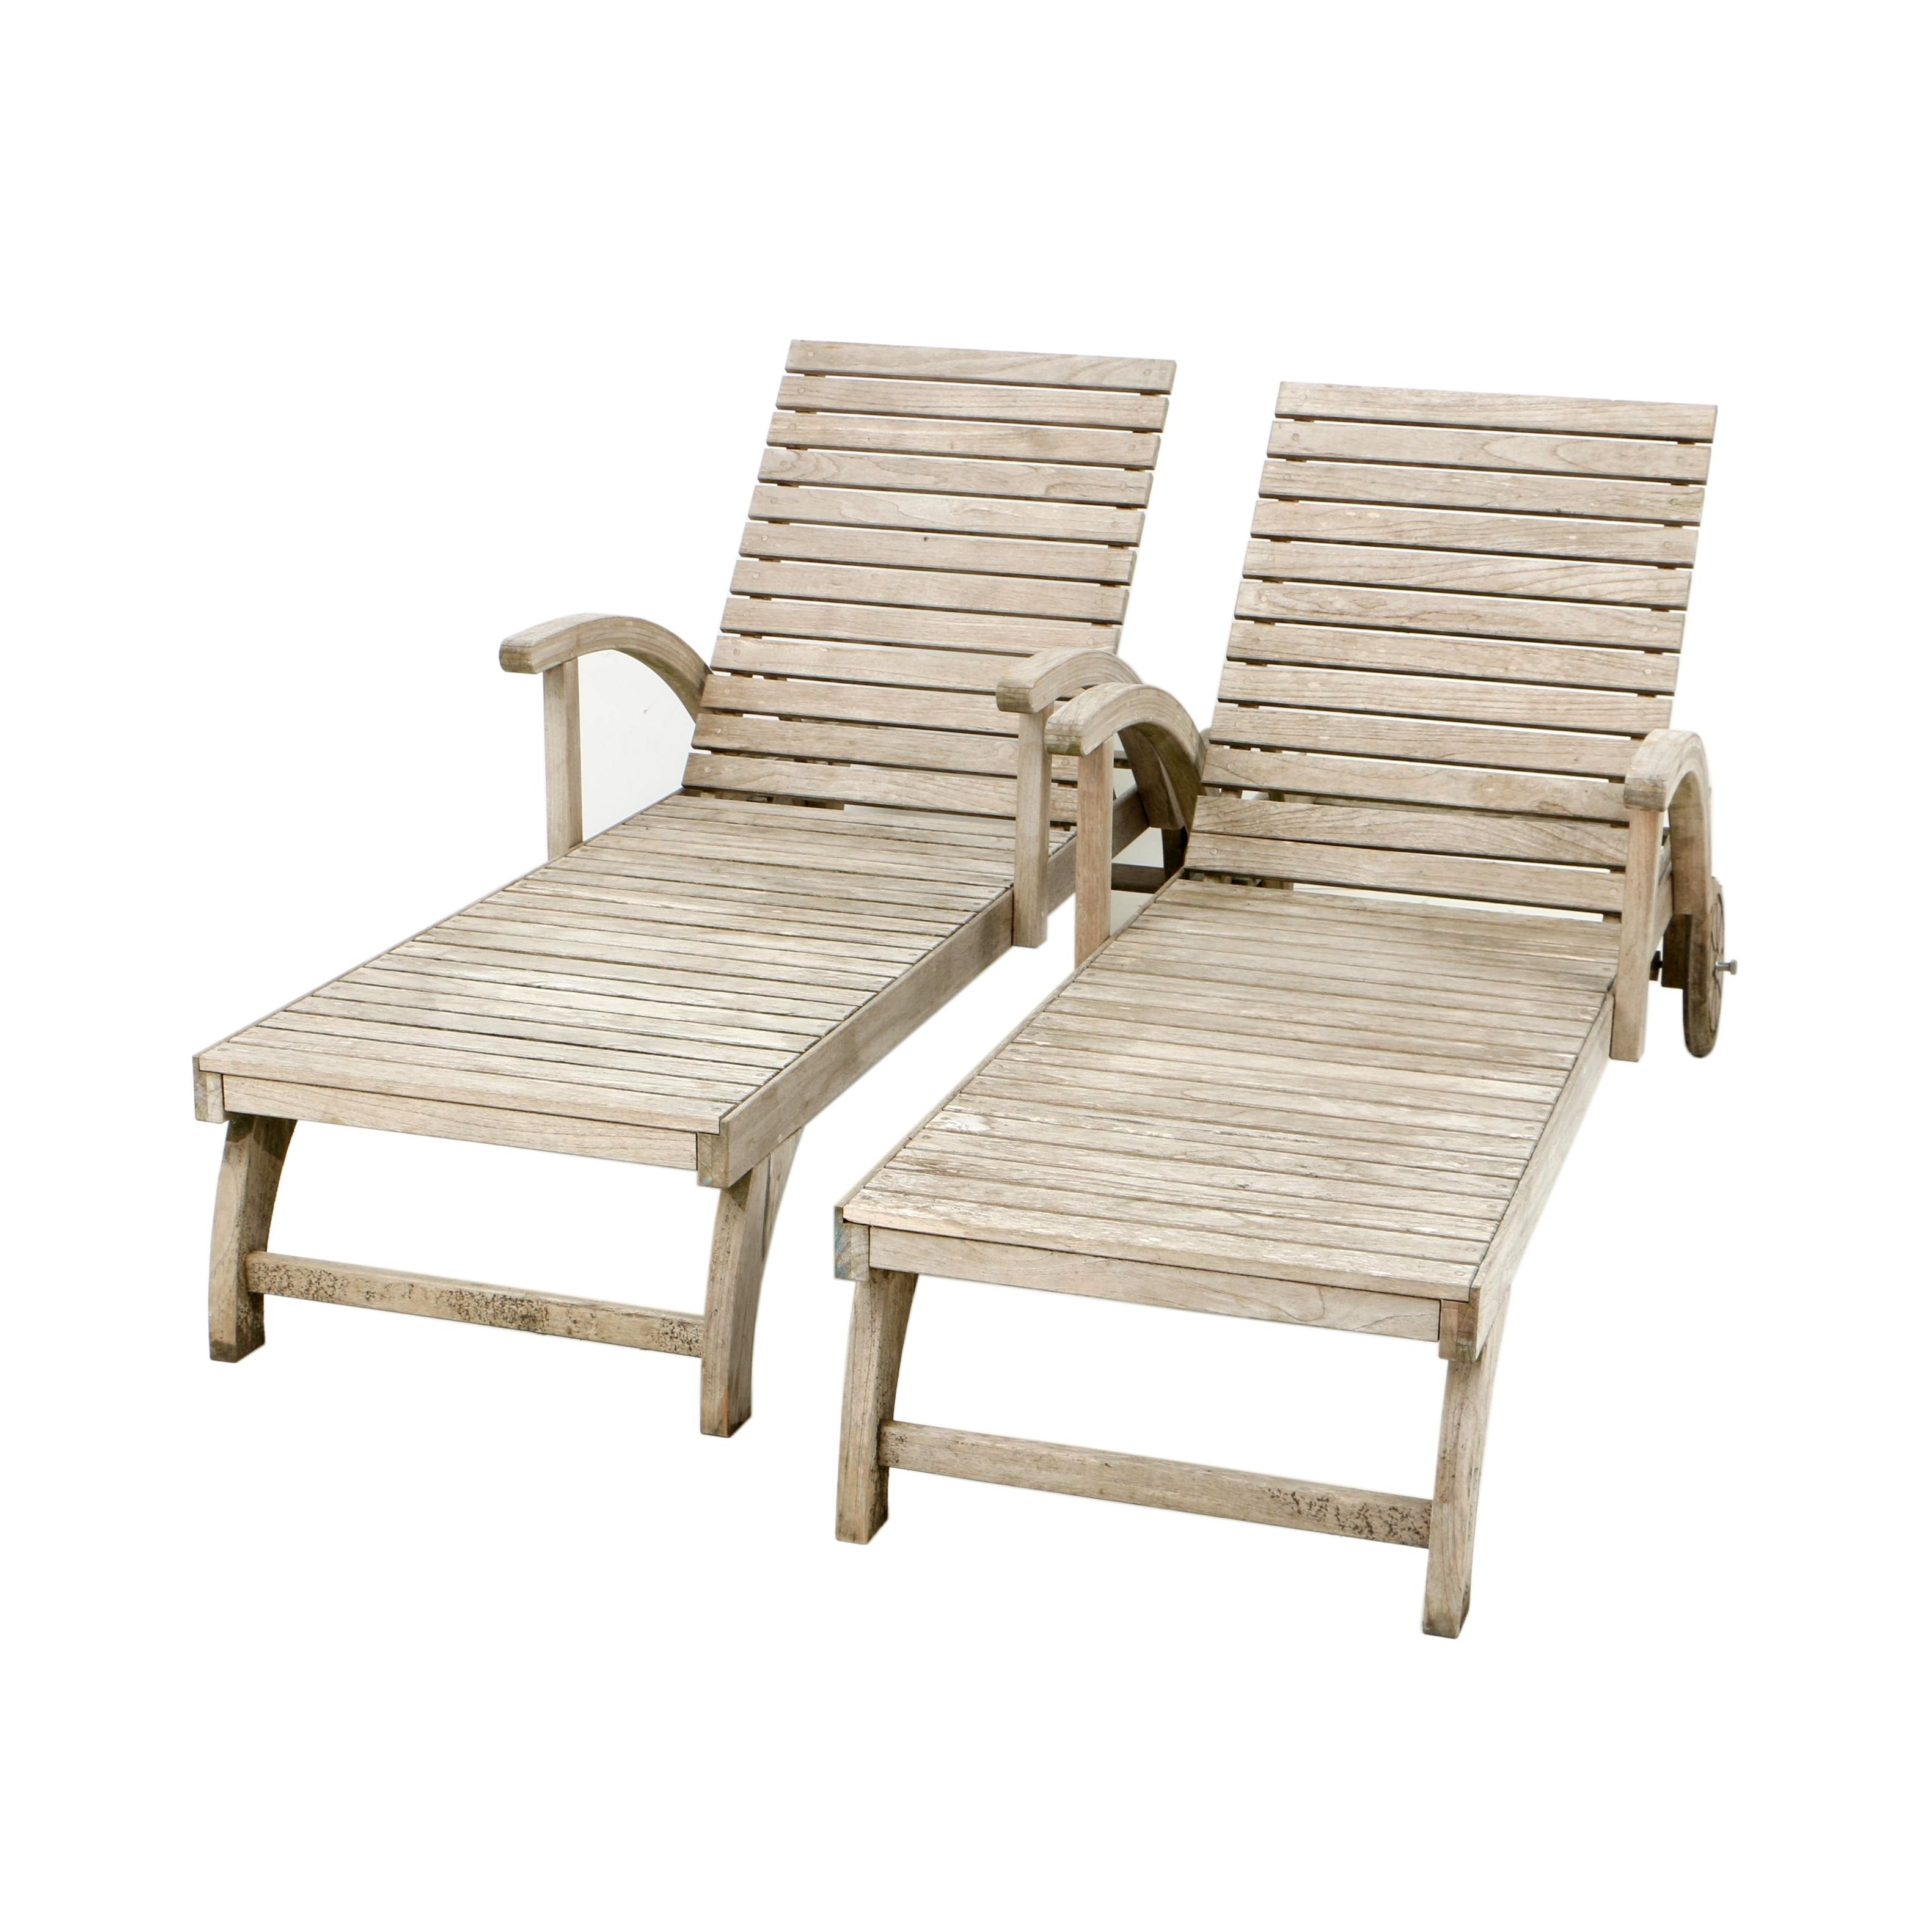 Teak Patio Chaise Lounges by Wood Classics